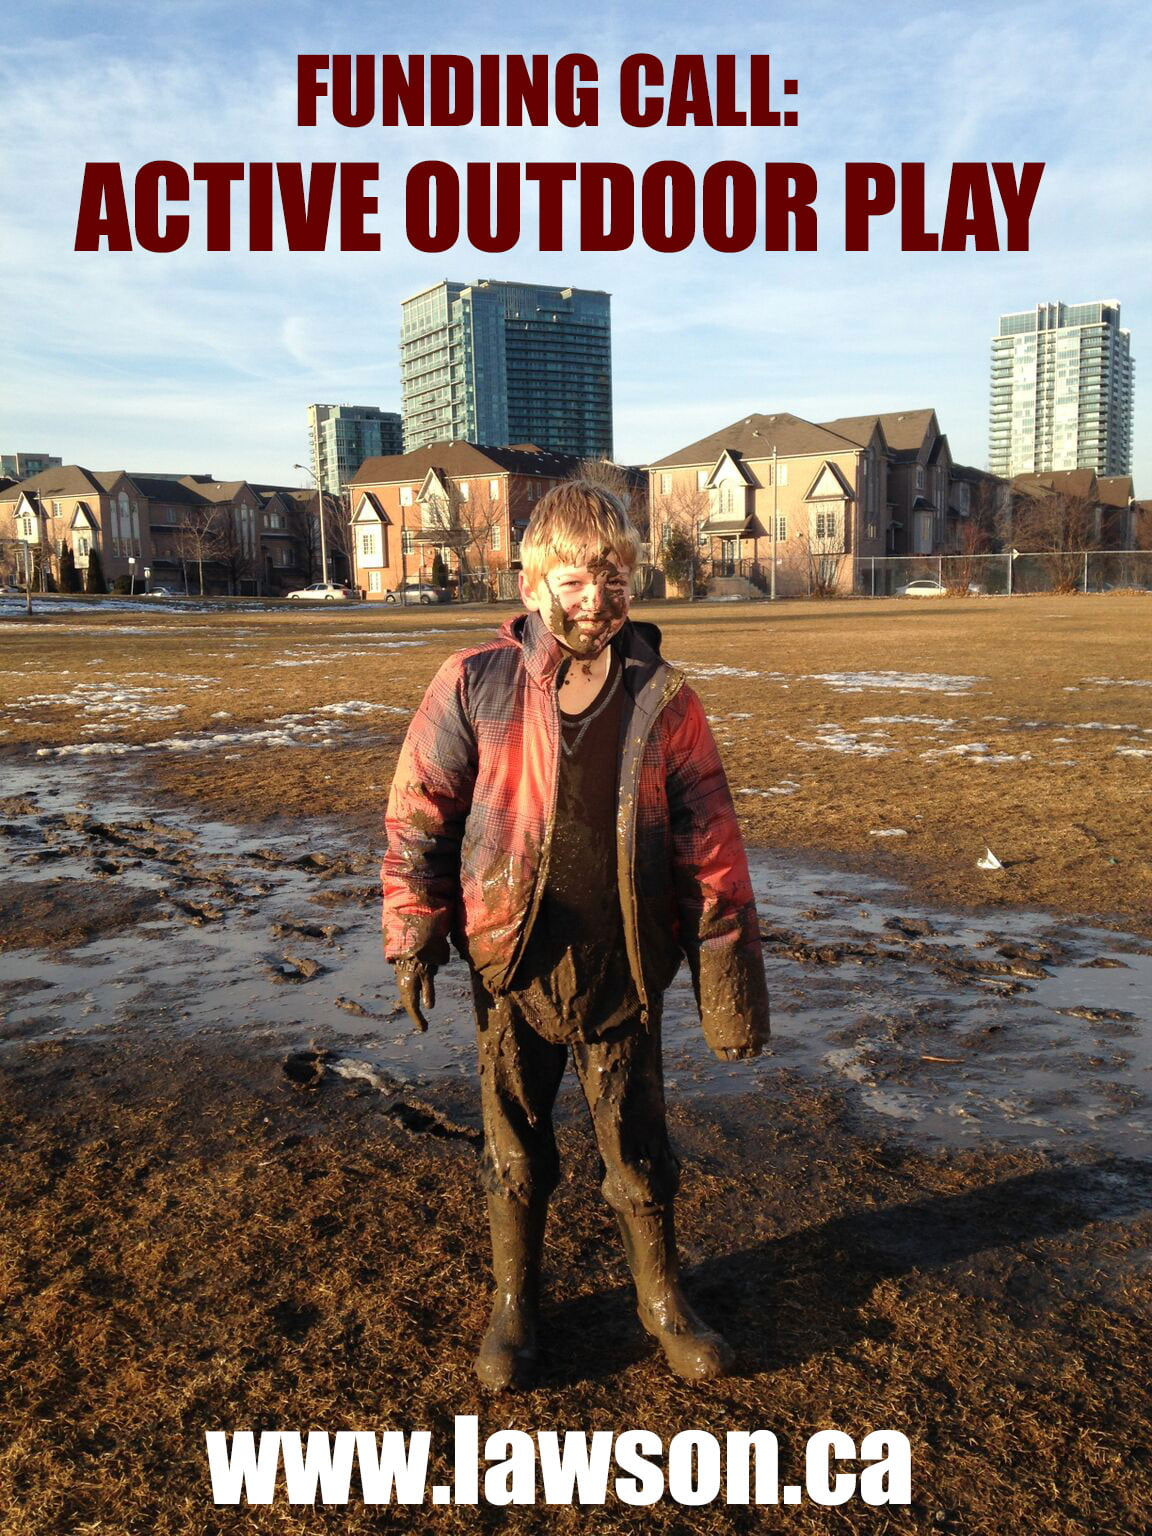 Lawson Foundation Active Outdoor Play Funding Call